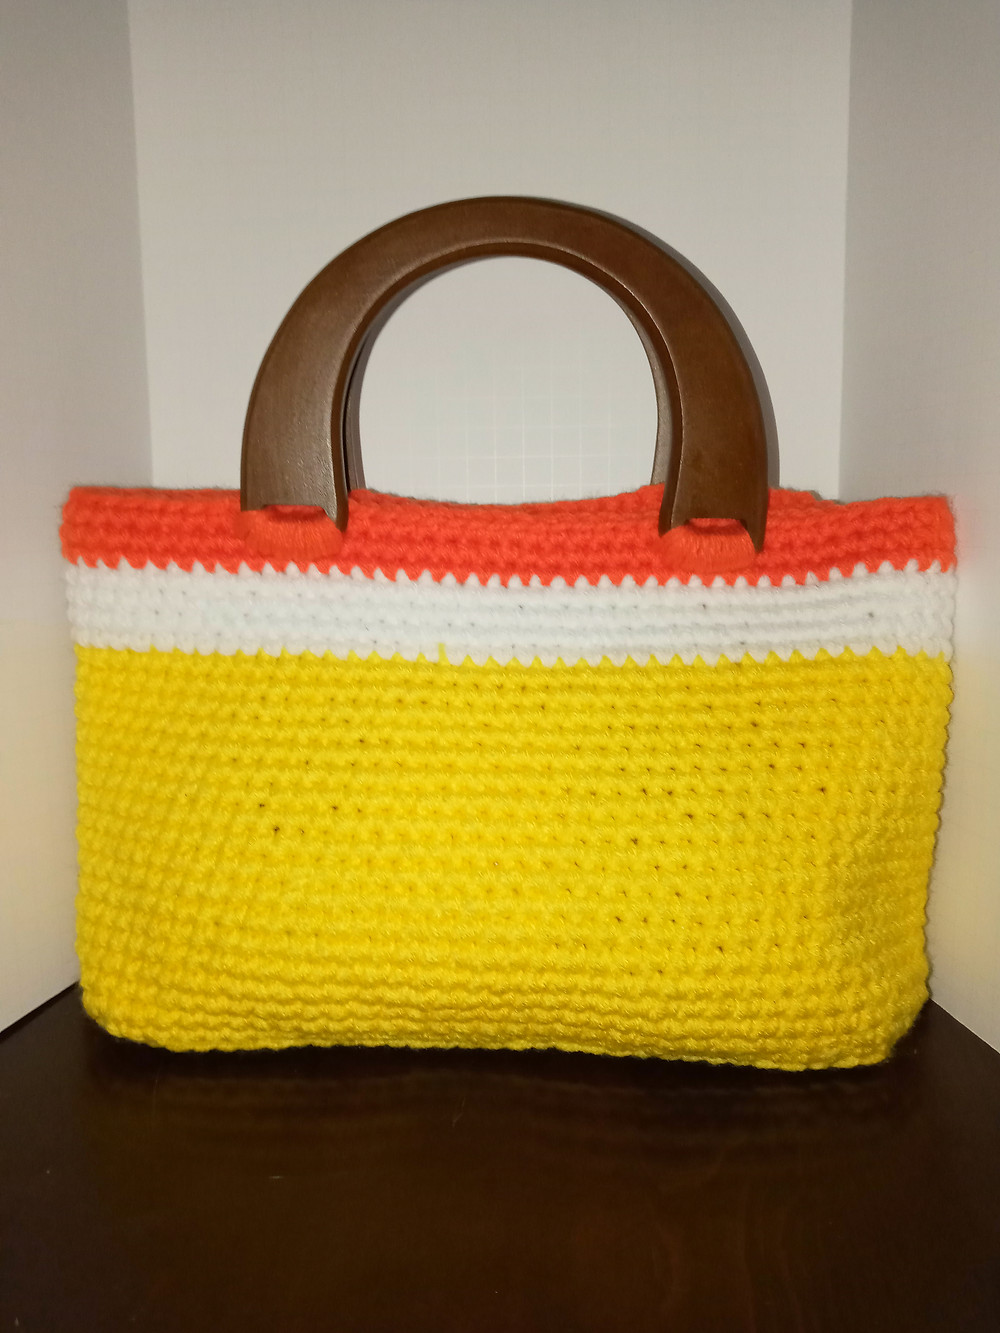 New Summer Line of Bags from Renaee Smith